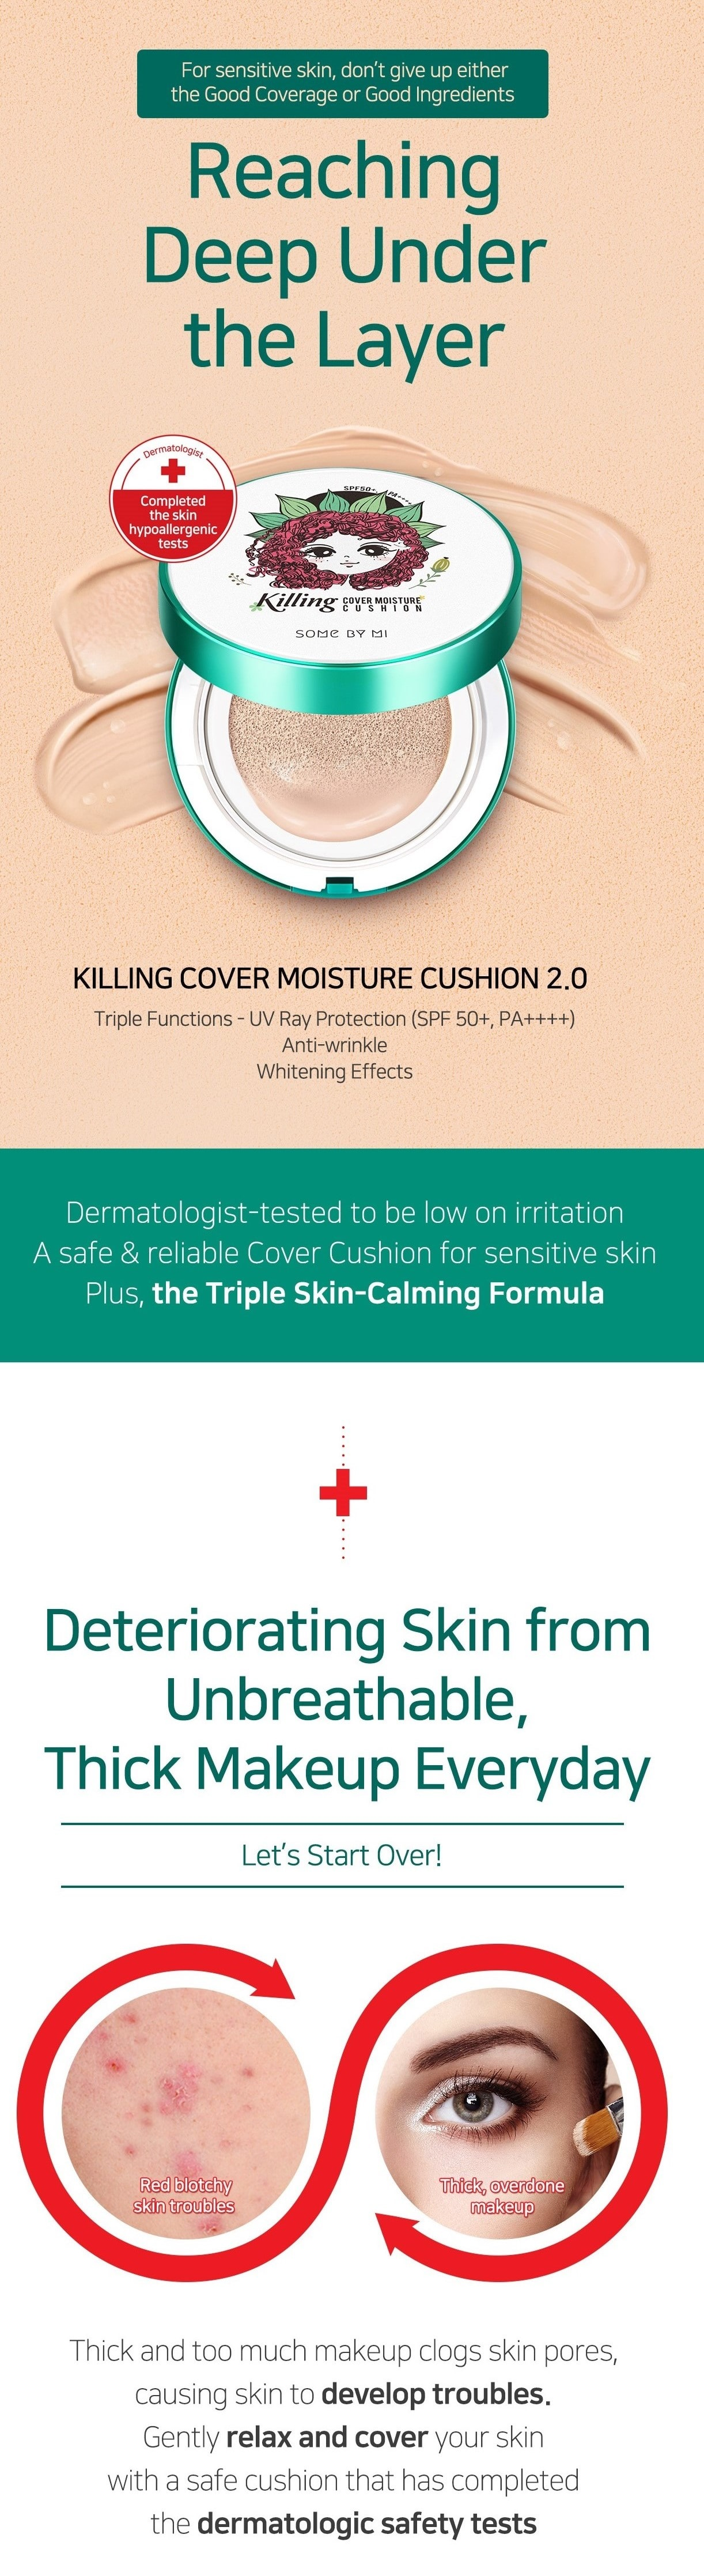 SOME BY MI Killing Cover Moisture Cushion 2.0 SPF50+/PA++++